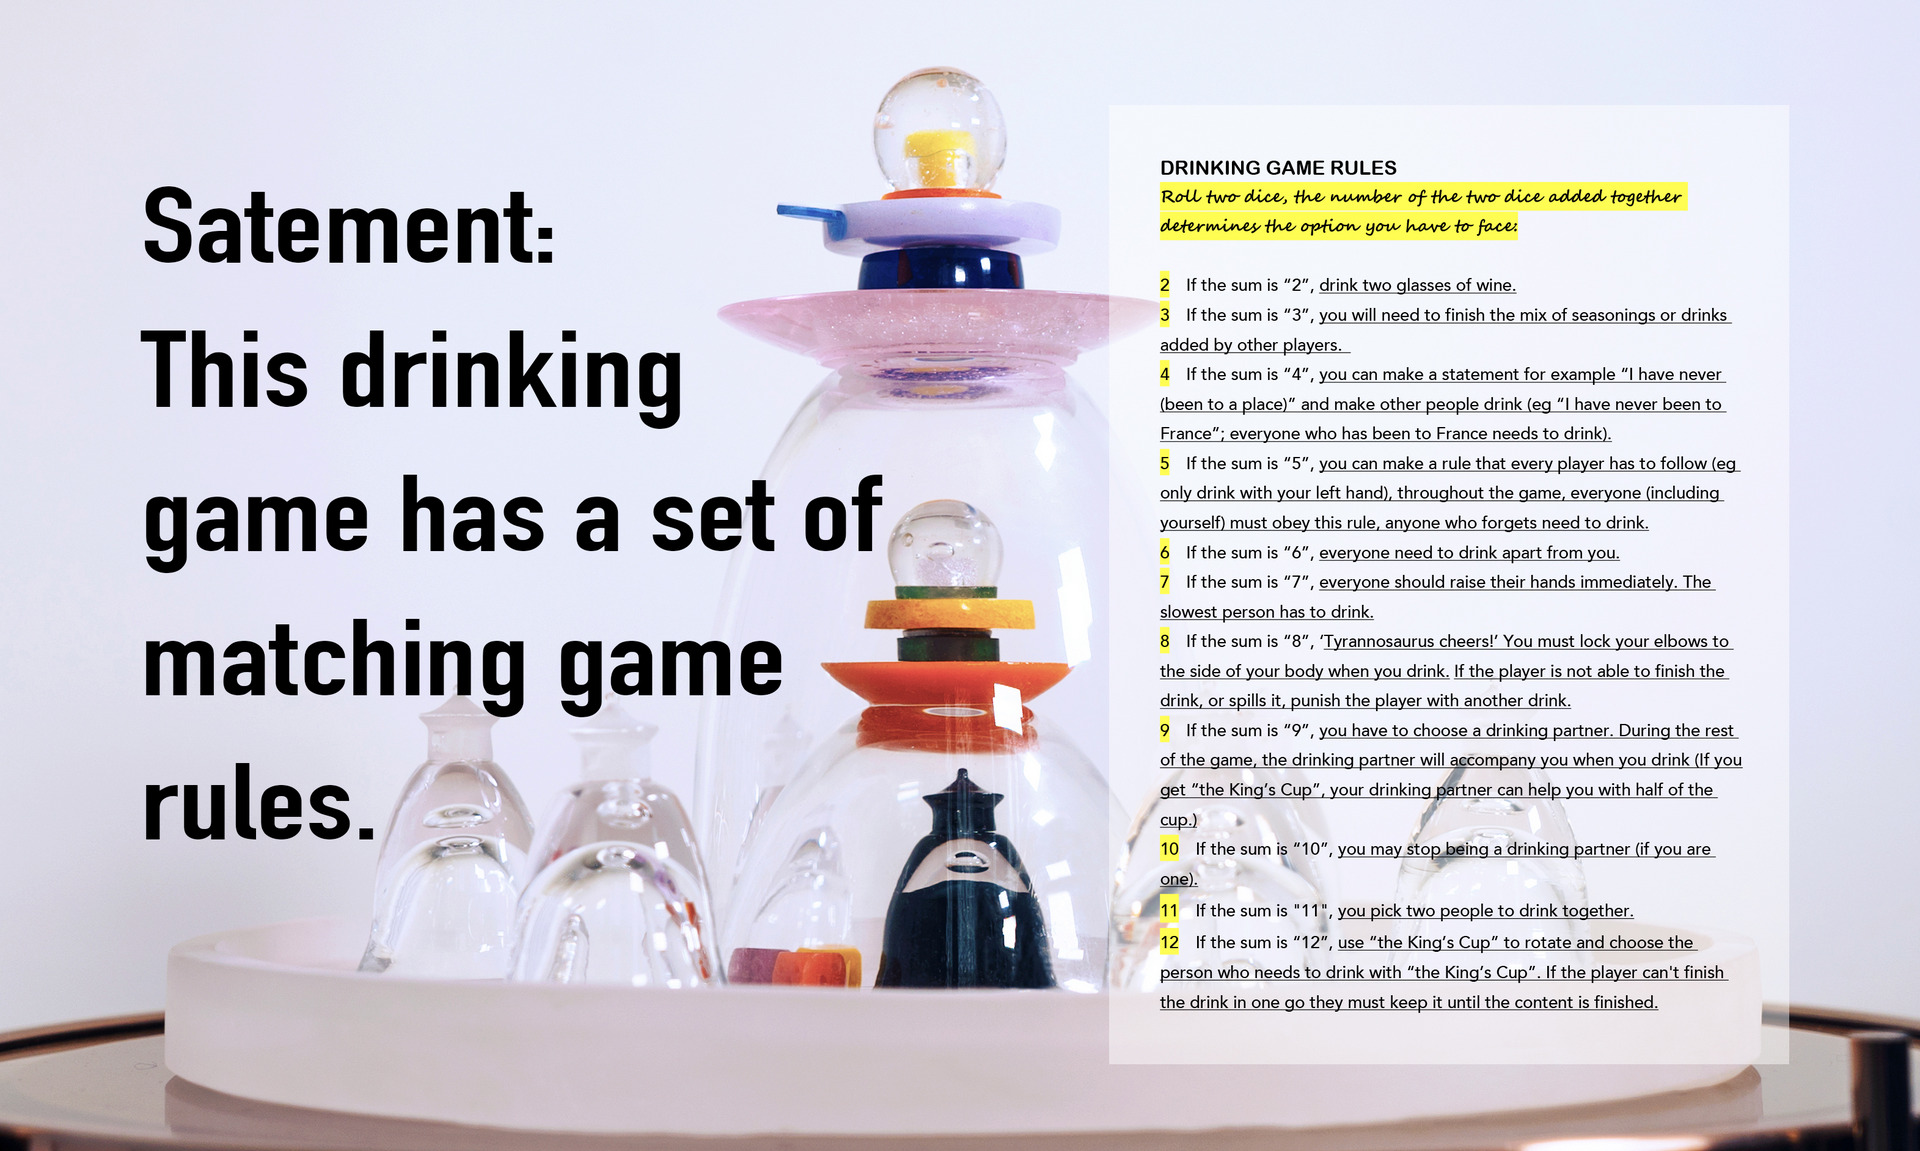 Rules of game